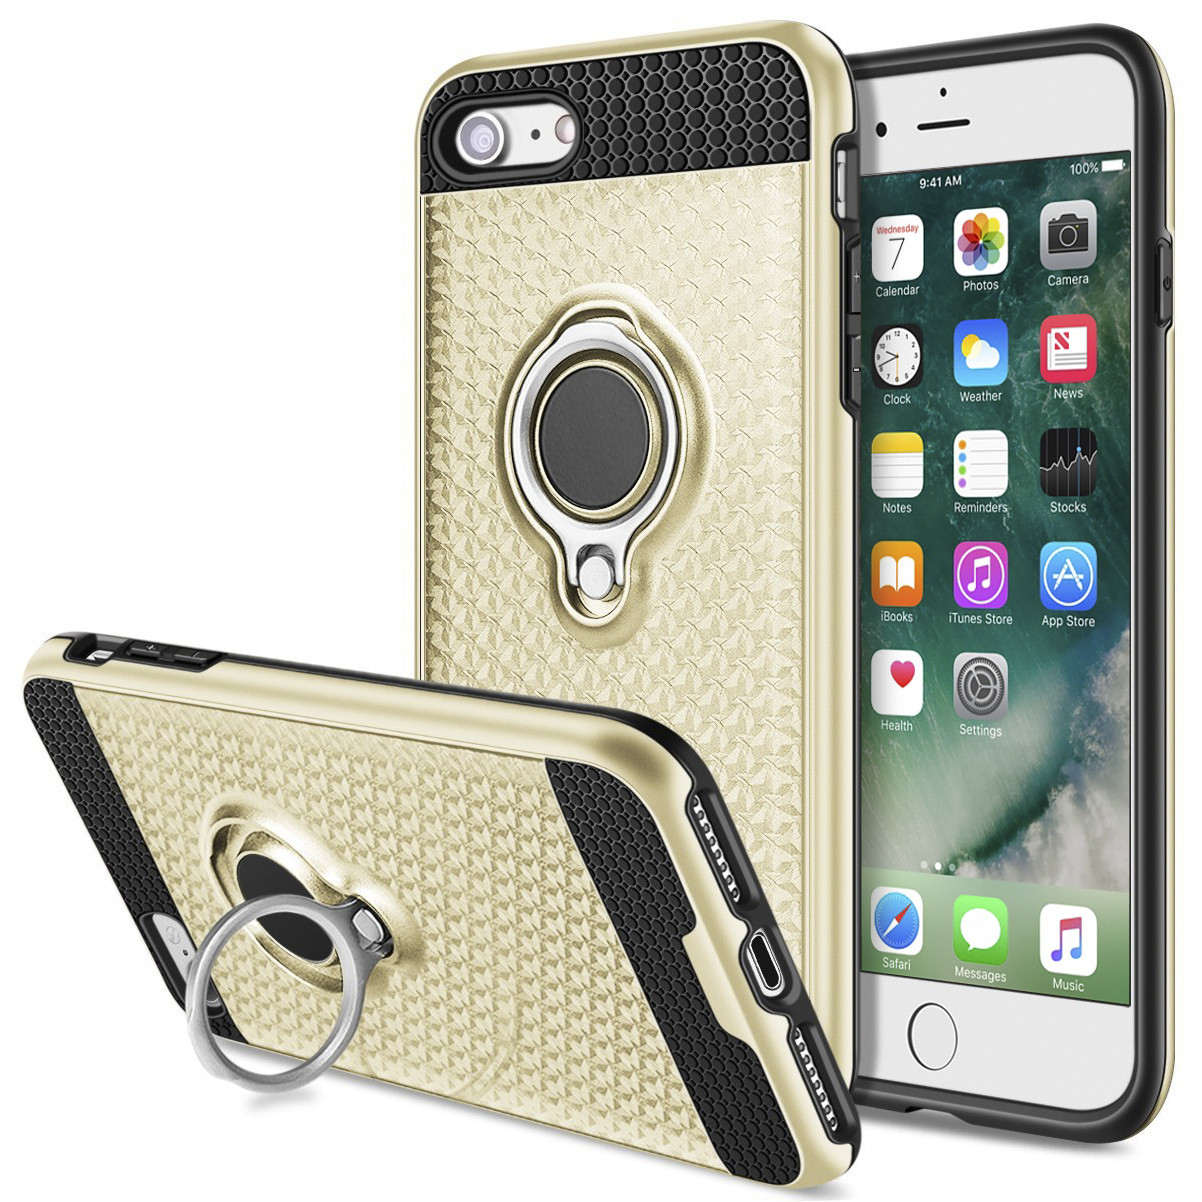 Apple iPhone 8 -  Heavy-Duty Rugged Case with Hideaway Ring Holder Stand, Gold/Black